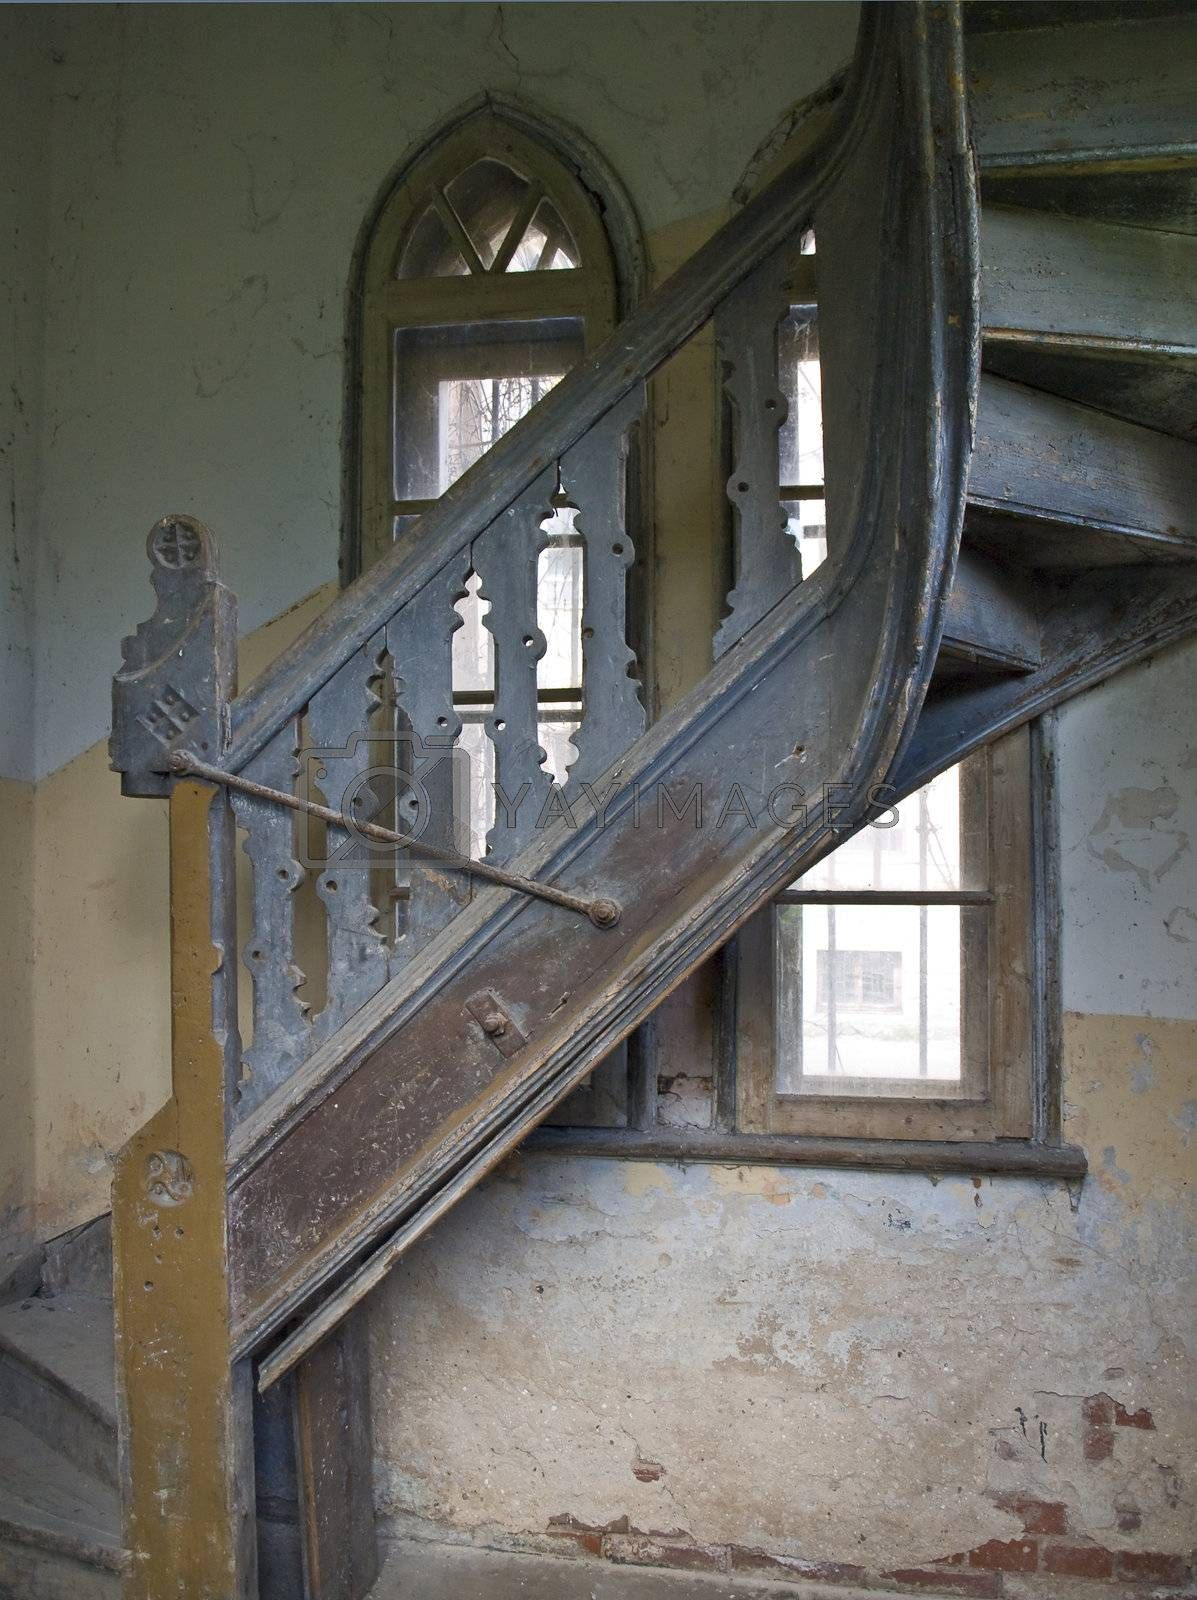 Old spiral stairs in tower wih arch windows